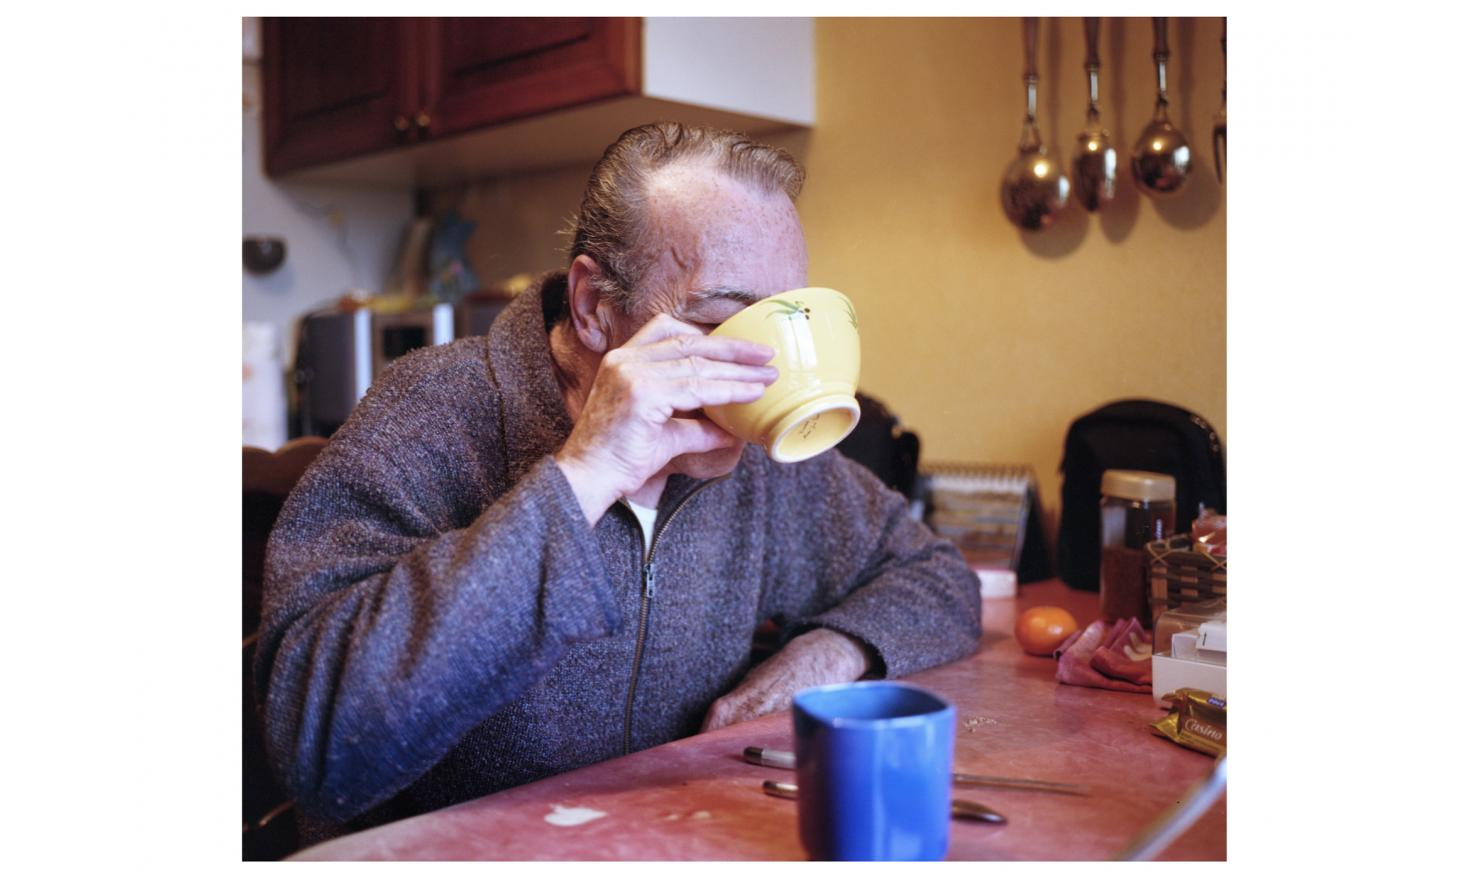 Robert Dherbeys, 70 years old, alone at breakfast, Romans France 4th of December 2014